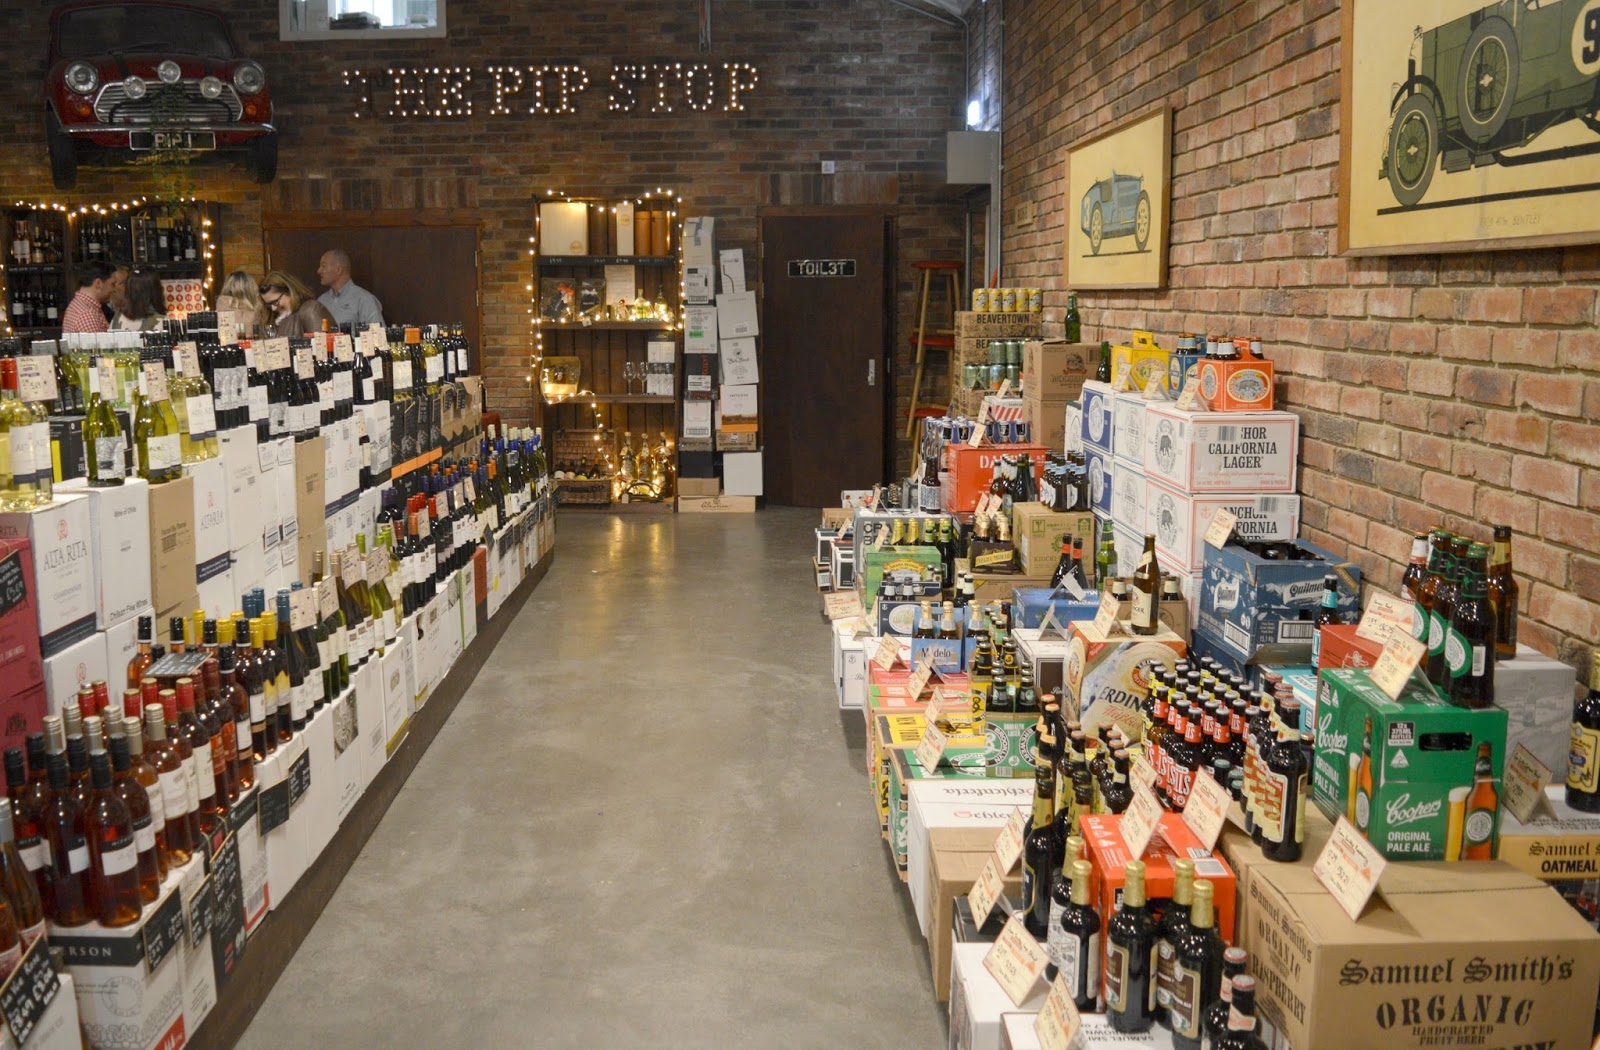 Buy Wine and Craft Beer from The Pip Stop - a quirky converted garage in Lanchester, County Durham. Expert staff and tastings. Order Online too - inside the shop